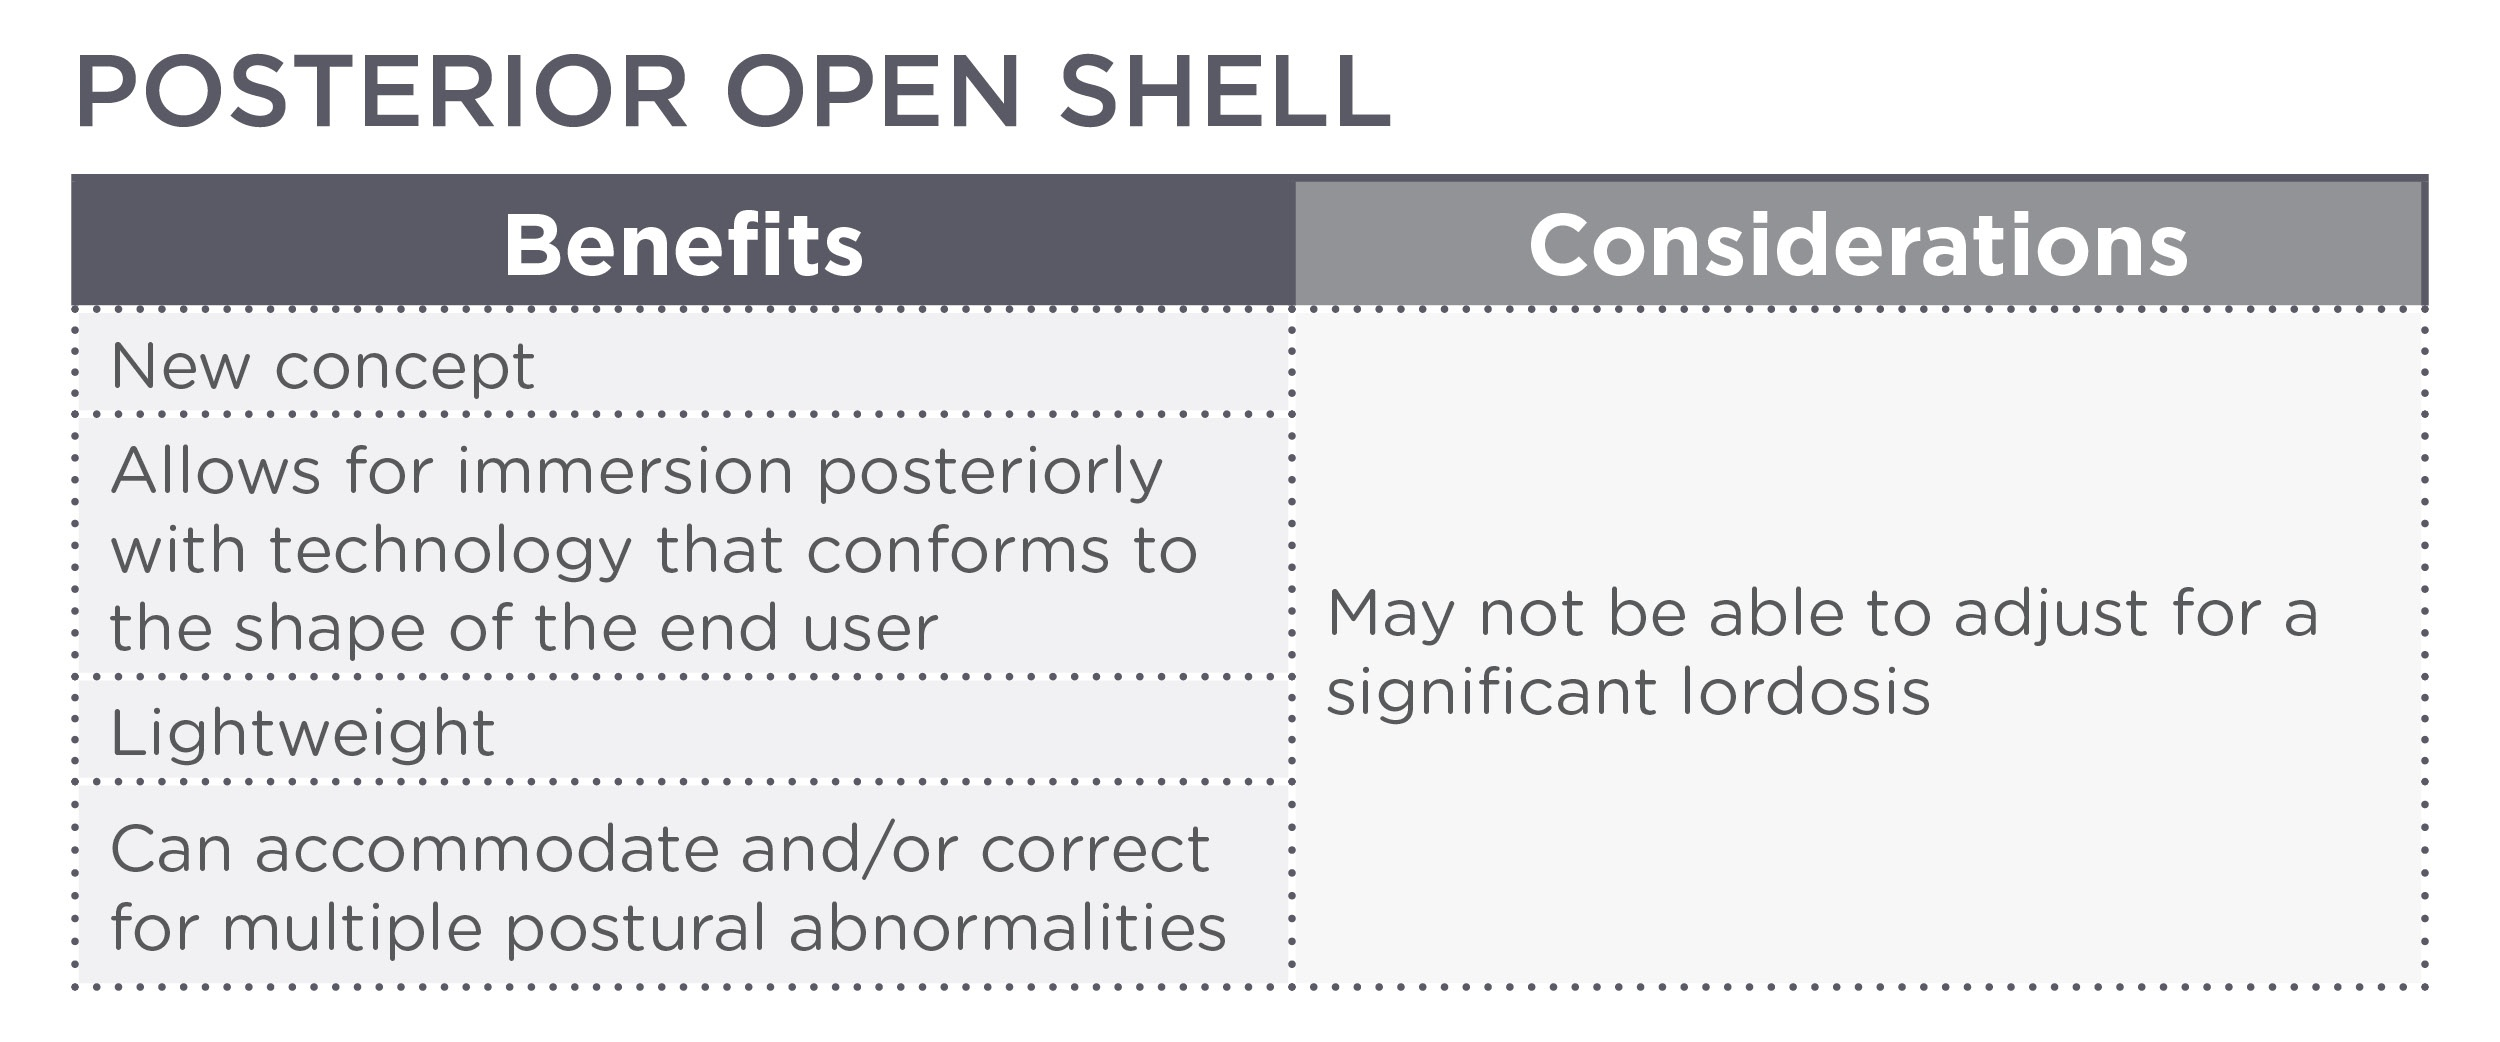 Posterior Open Shell Chart